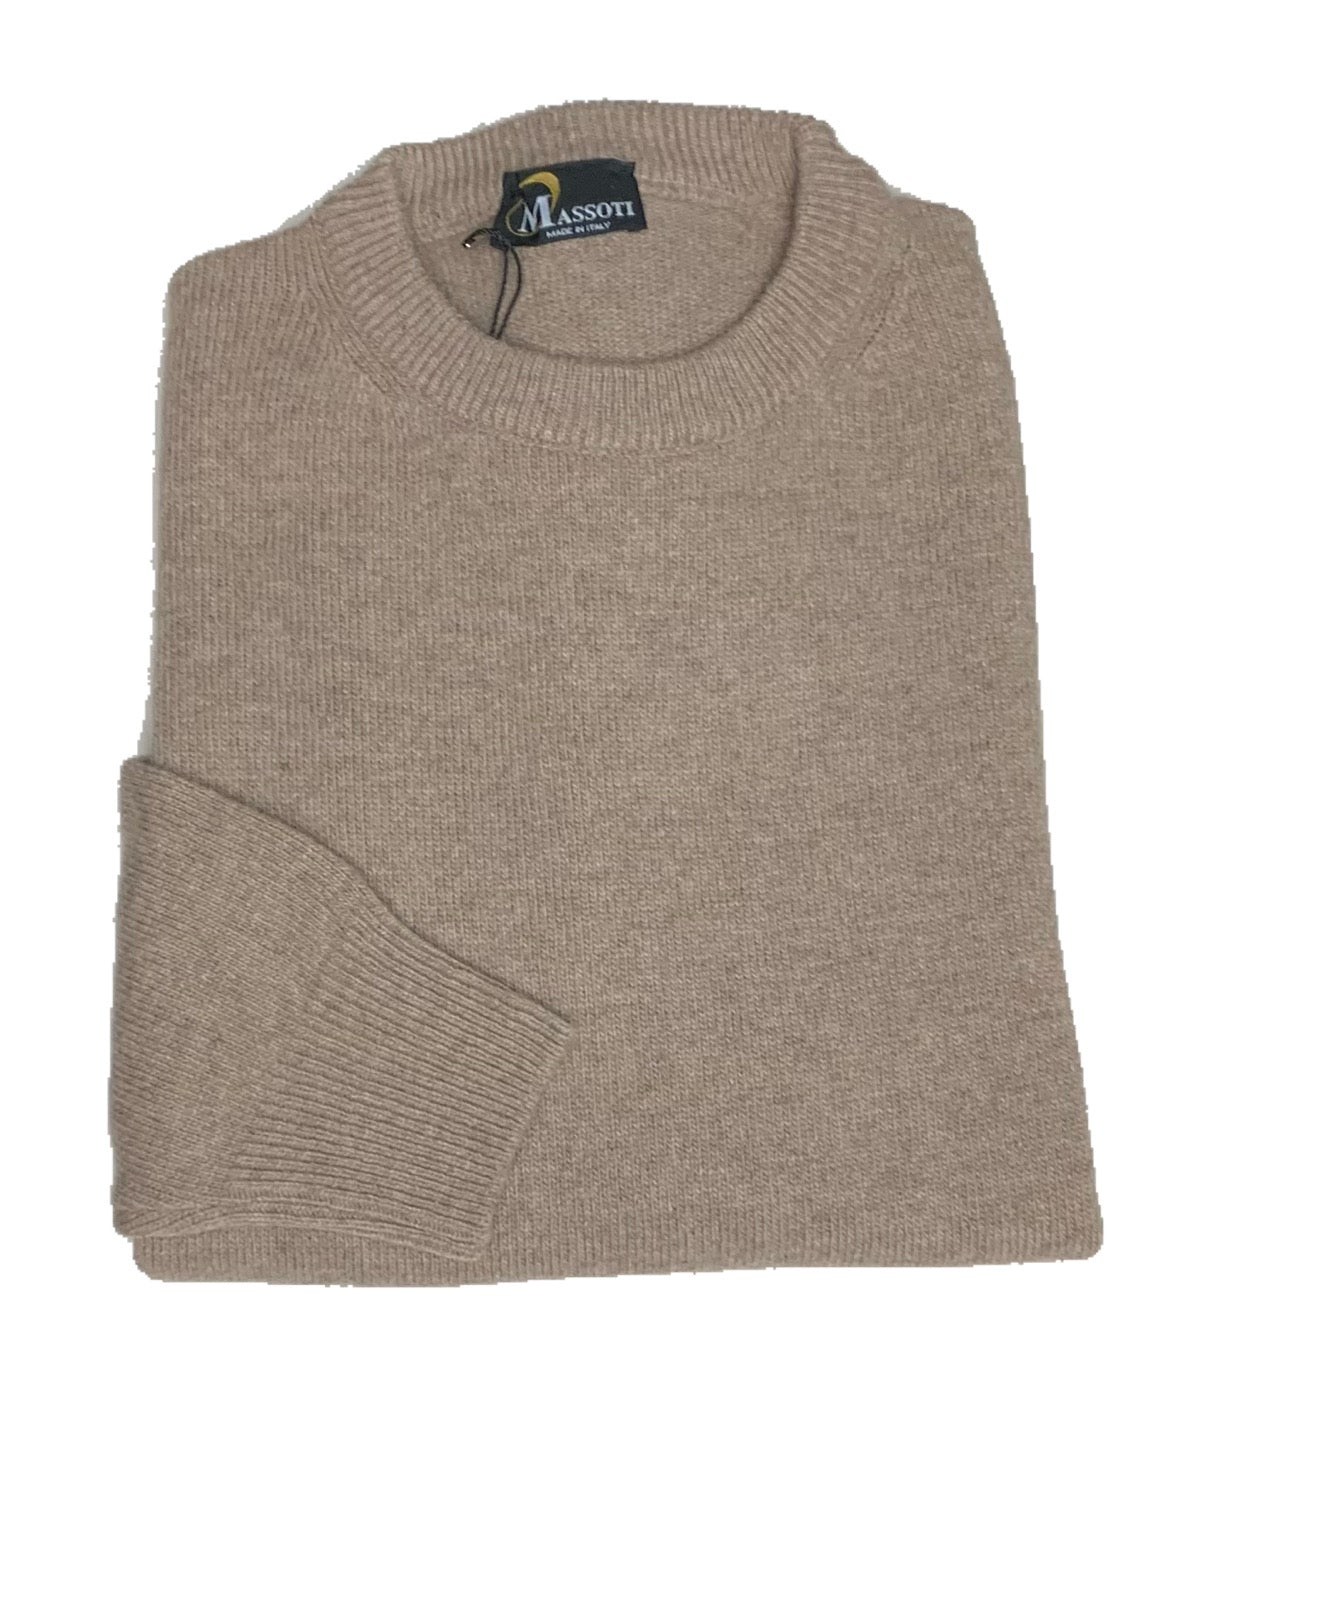 Massotti Sweater - Crew or V-neck - Relaxed Fit - Greens, Browns and Blues